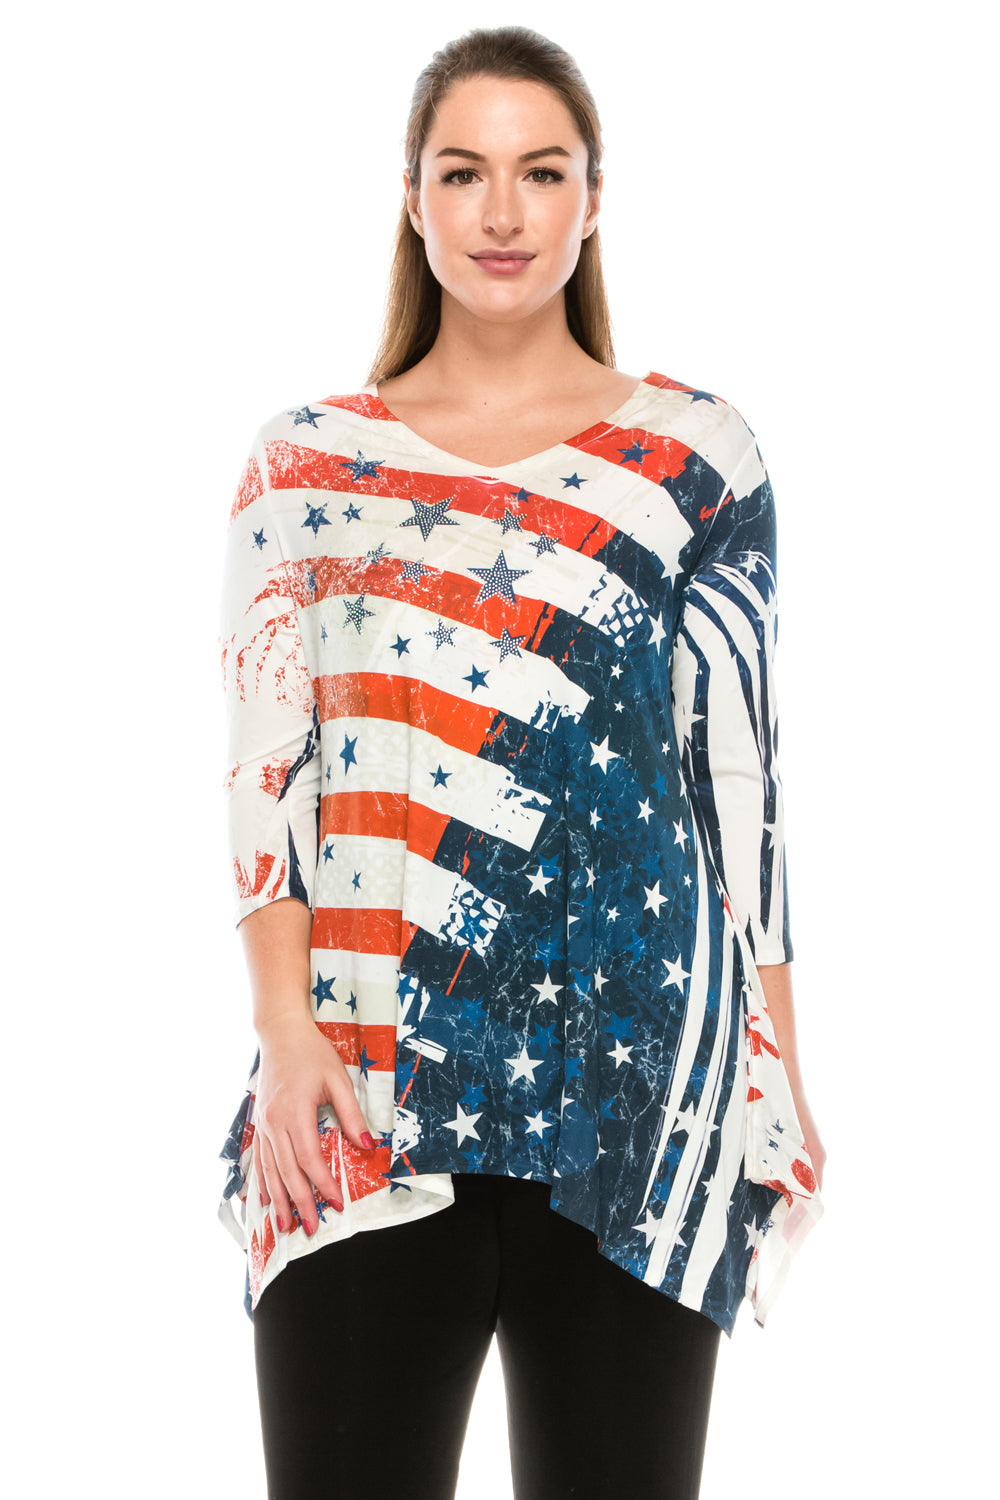 Jostar Women's HIT V-Neck Binding Top 3/4 Sleeve Sublimation Rhinestones, 313HT-QU-R-U162 - Jostar Online